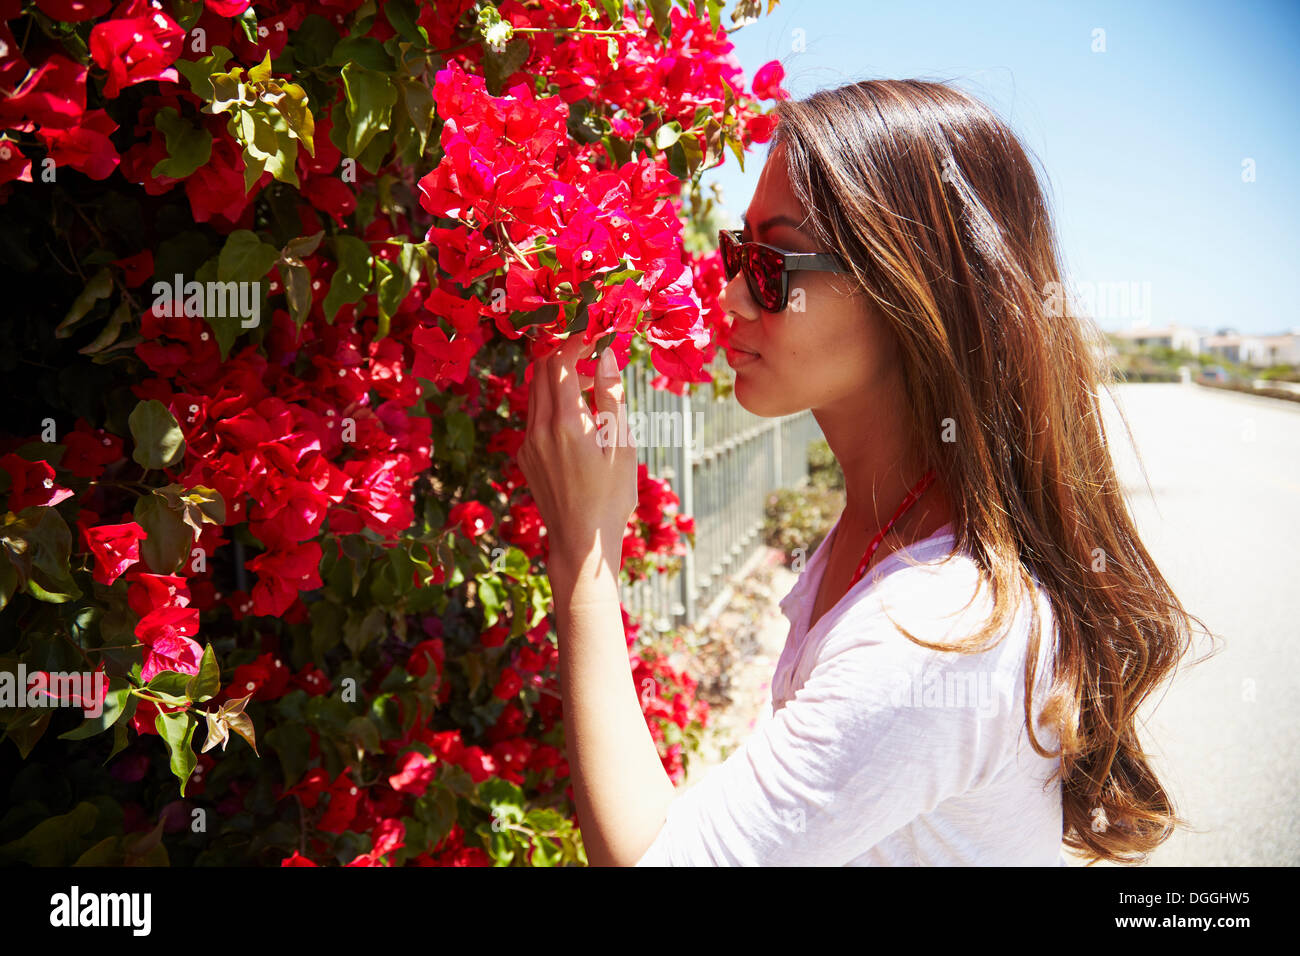 Young woman smelling flowers, Palos Verdes, California, USA Photo Stock